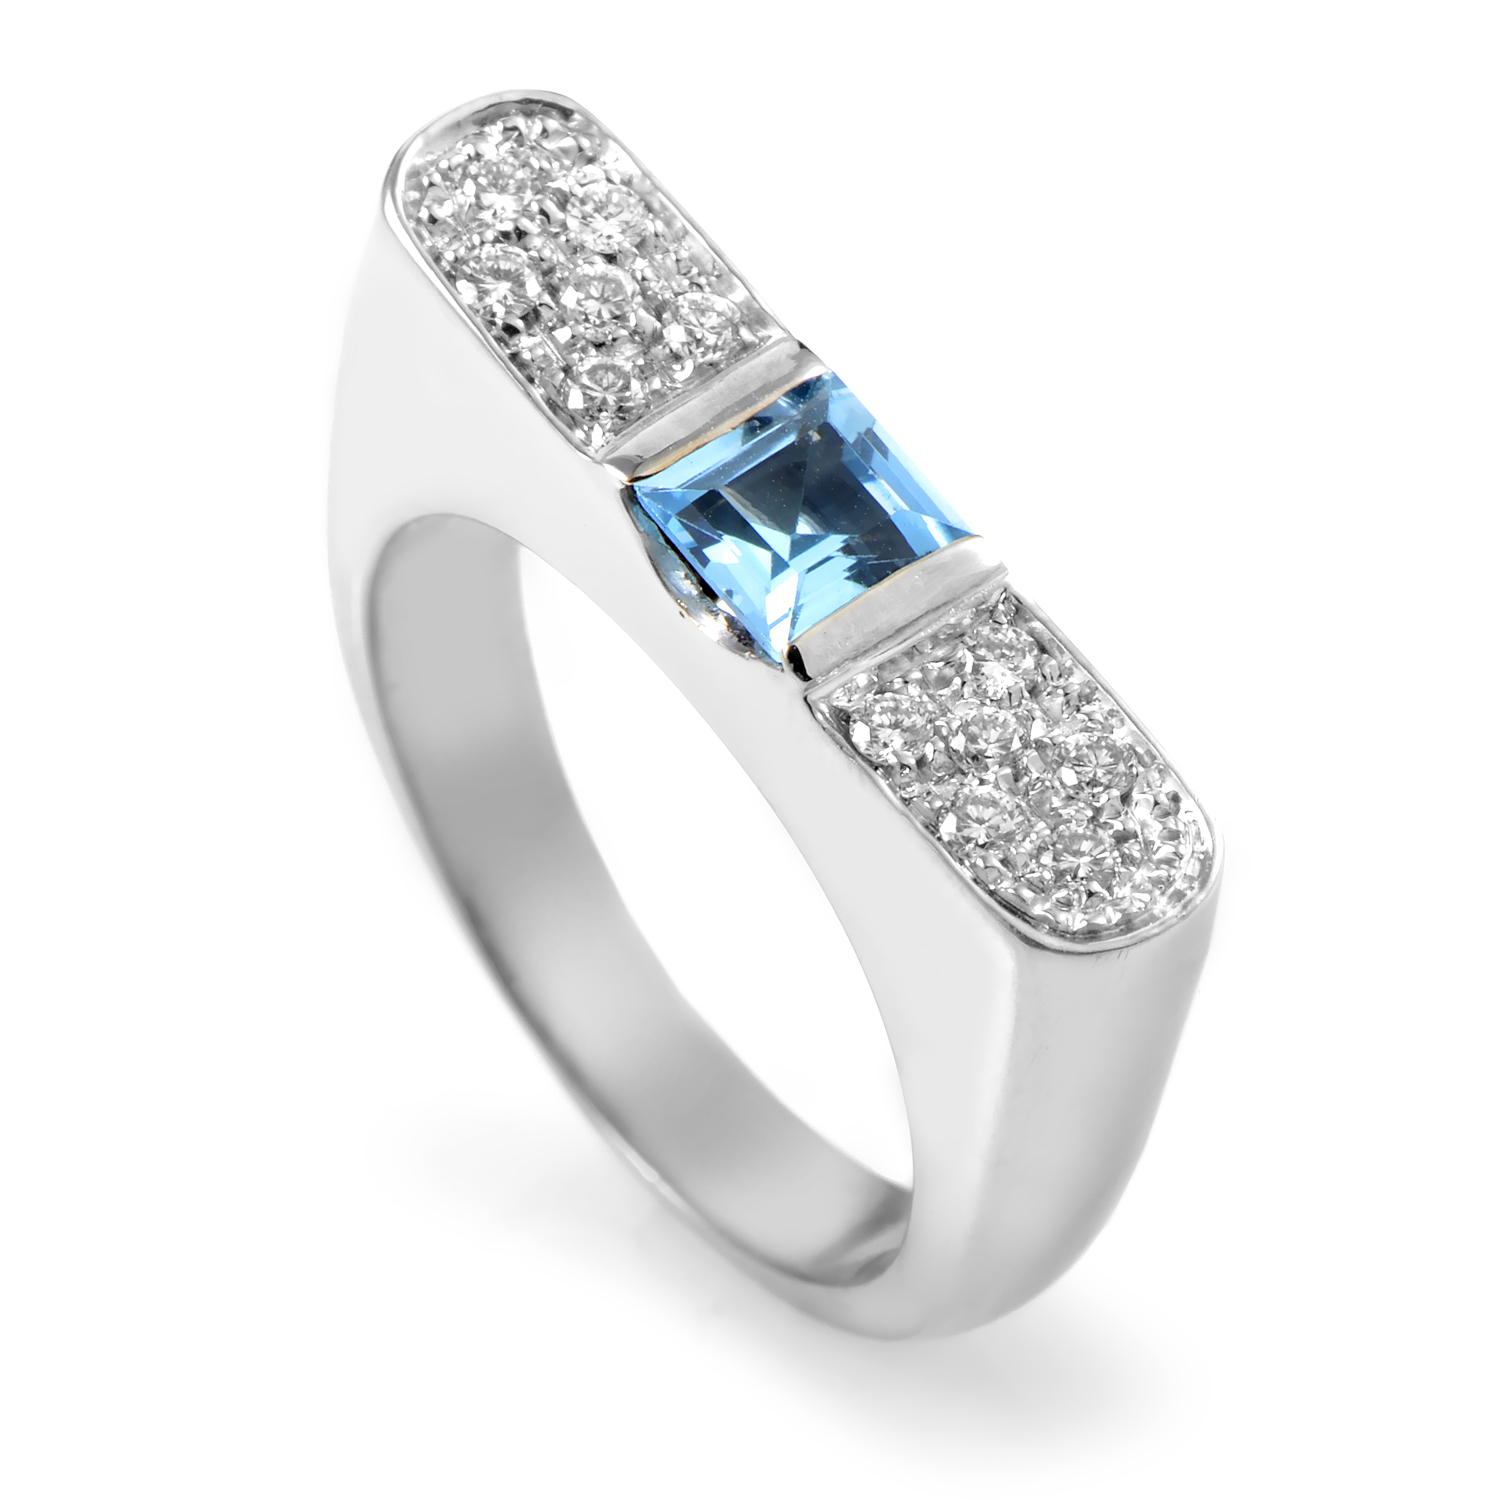 18K White Gold Diamond & Topaz Ring SN0098633ALTPZ